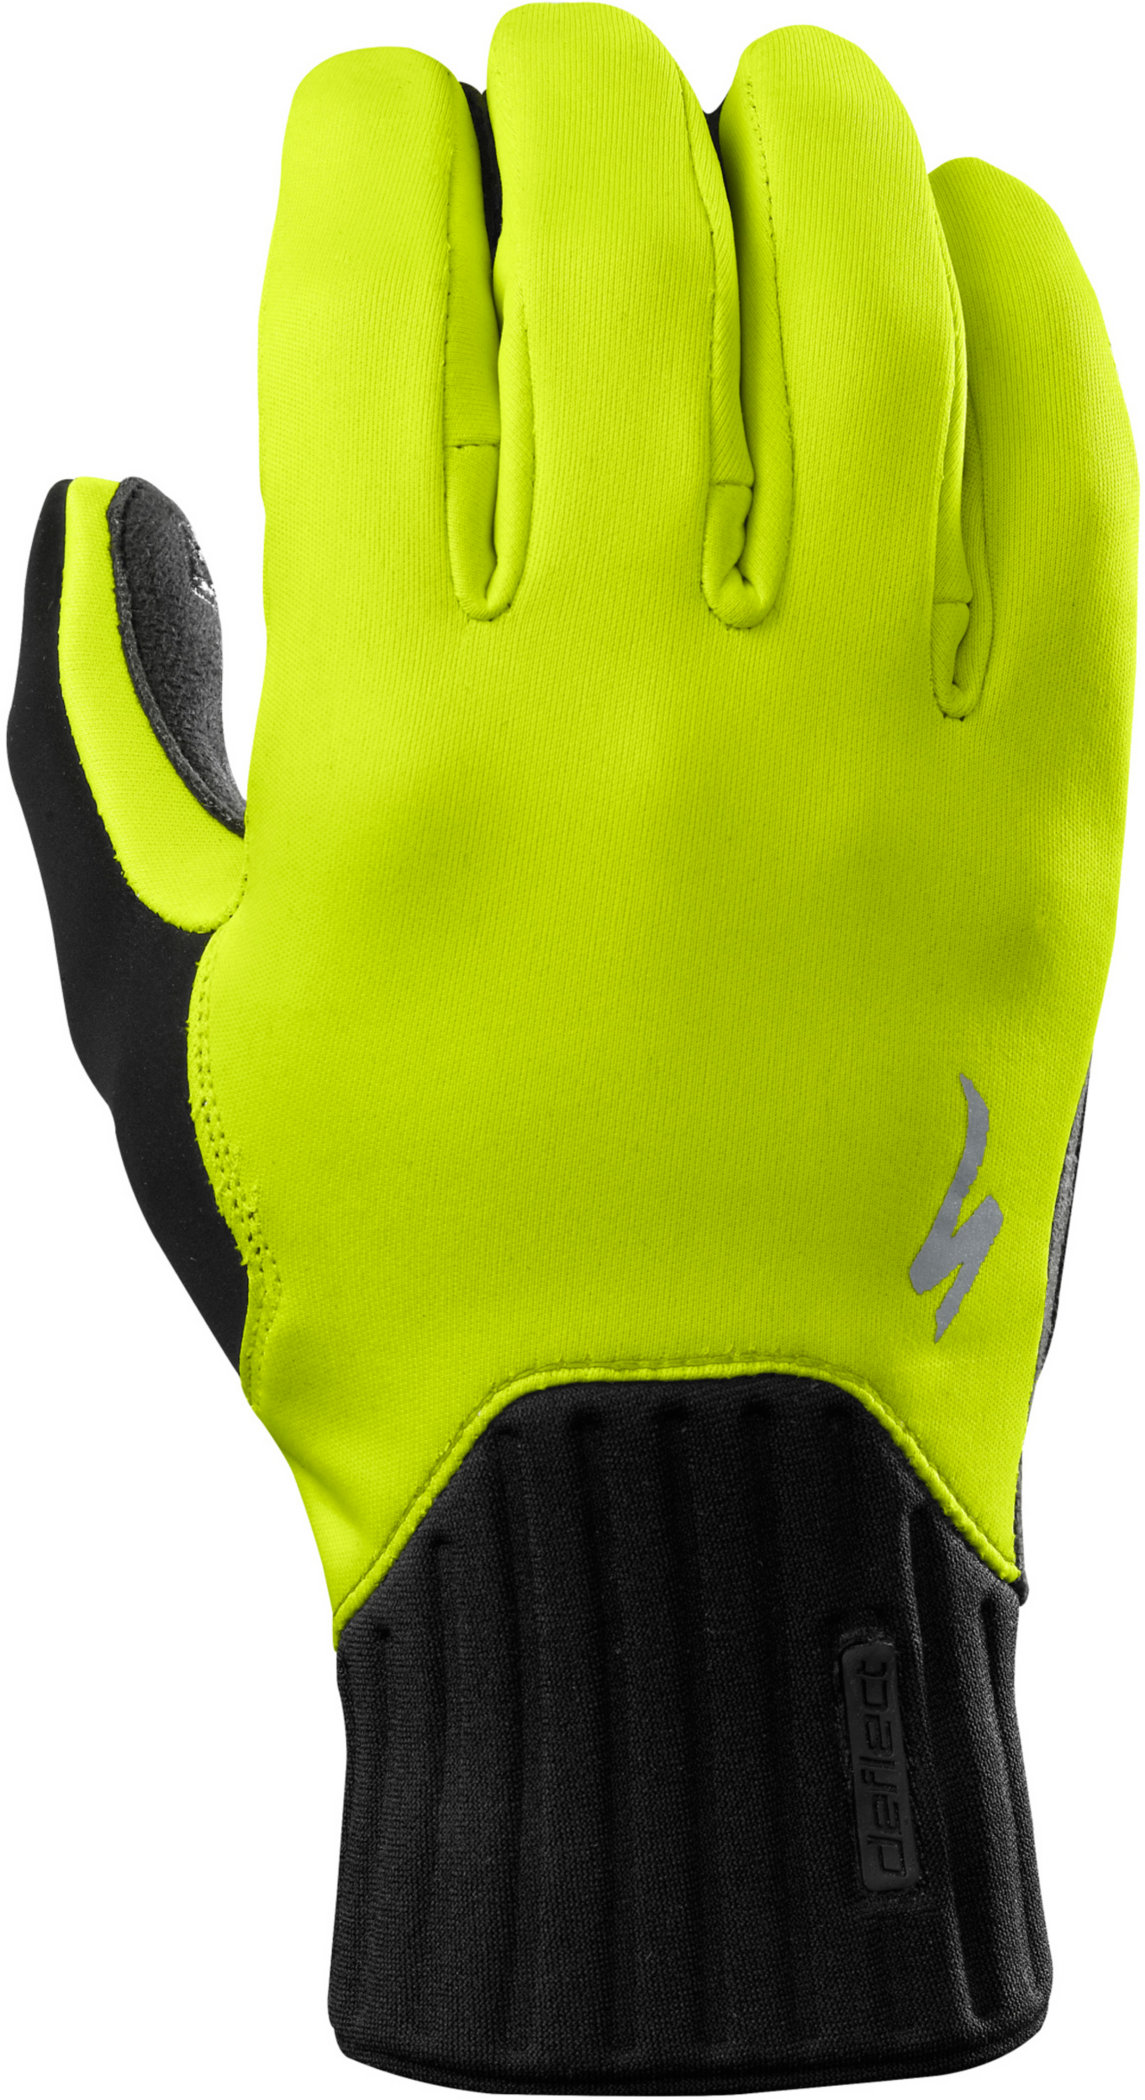 Specialized Deflect Gloves Neon Yellow Medium - Alpha Bikes